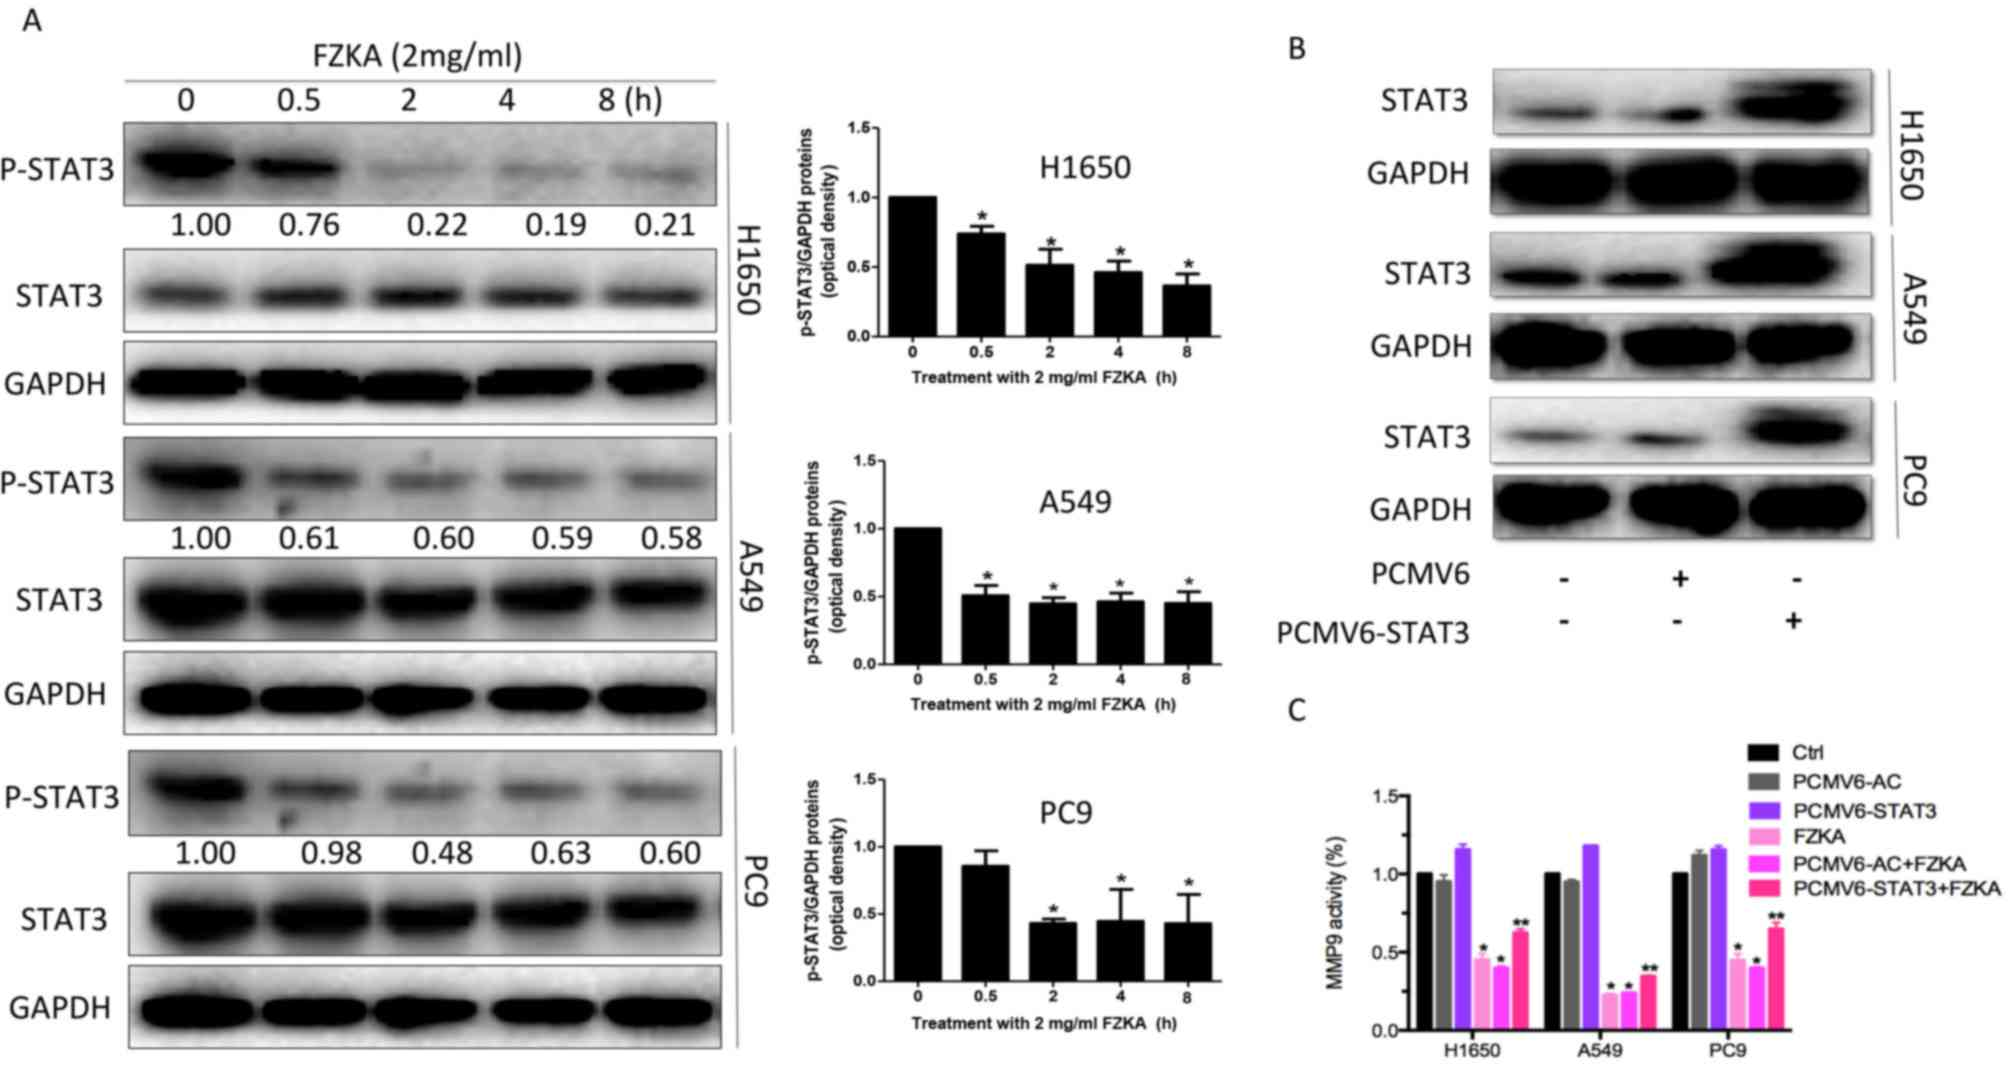 Chinese cancer cure herbs bibliography - Stat3 Regulates Mmp9 Activity In Lung Cancer Cells Treated With Fzka A Protein Expression Levels Of Stat3 Were Reduced Following Treatment With Fzka 2